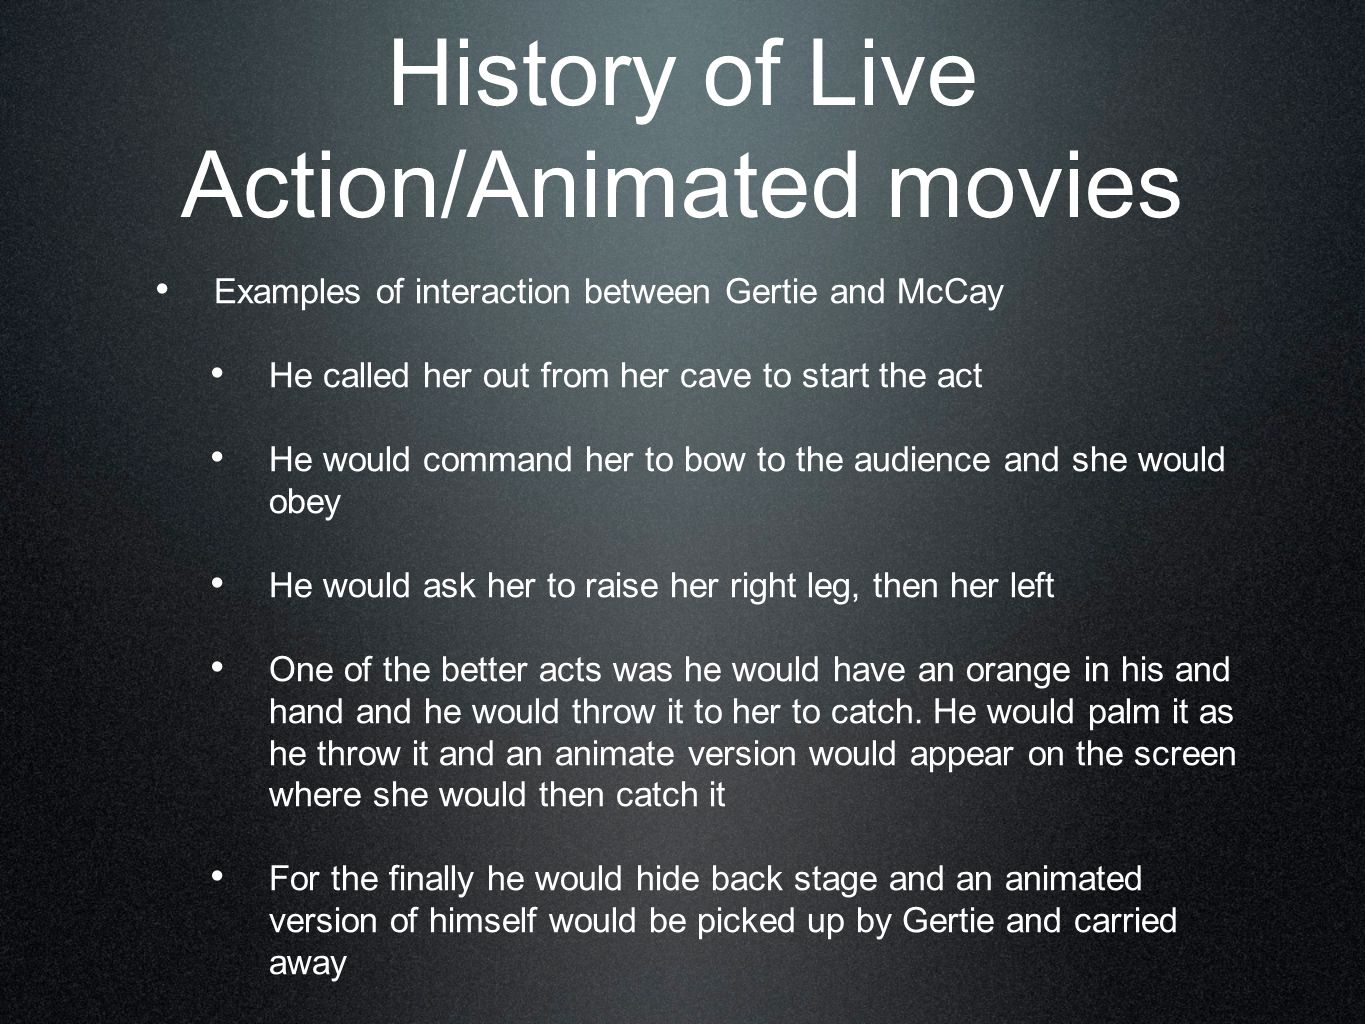 History of Live Action/Animated movies